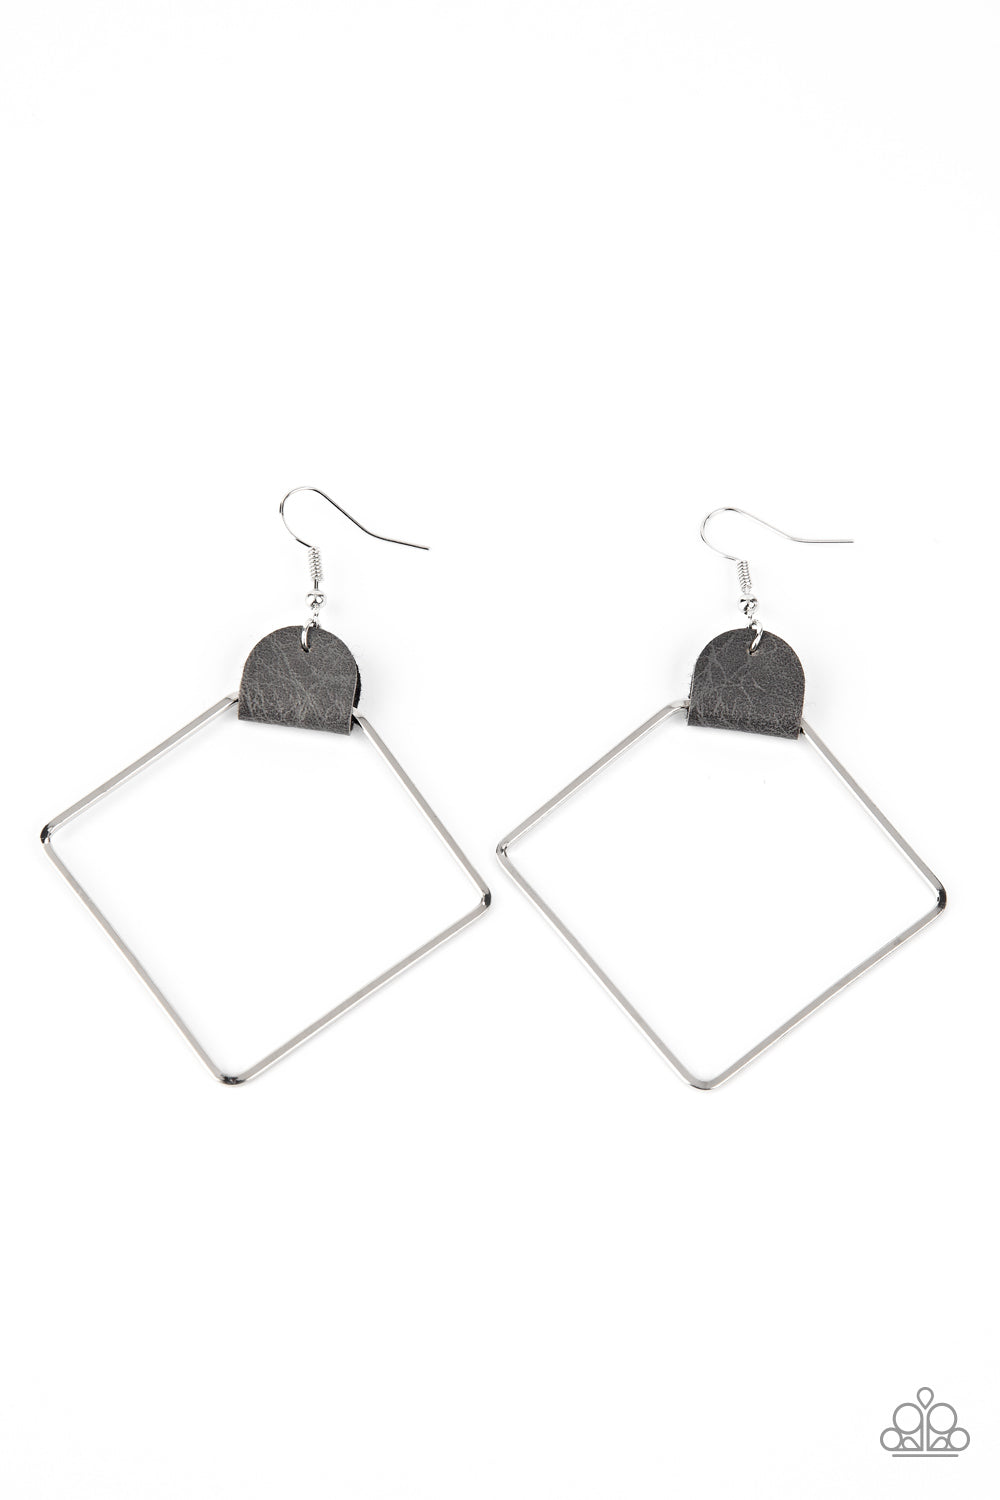 five-dollar-jewelry-friends-of-a-leather-silver-earrings-paparazzi-accessories